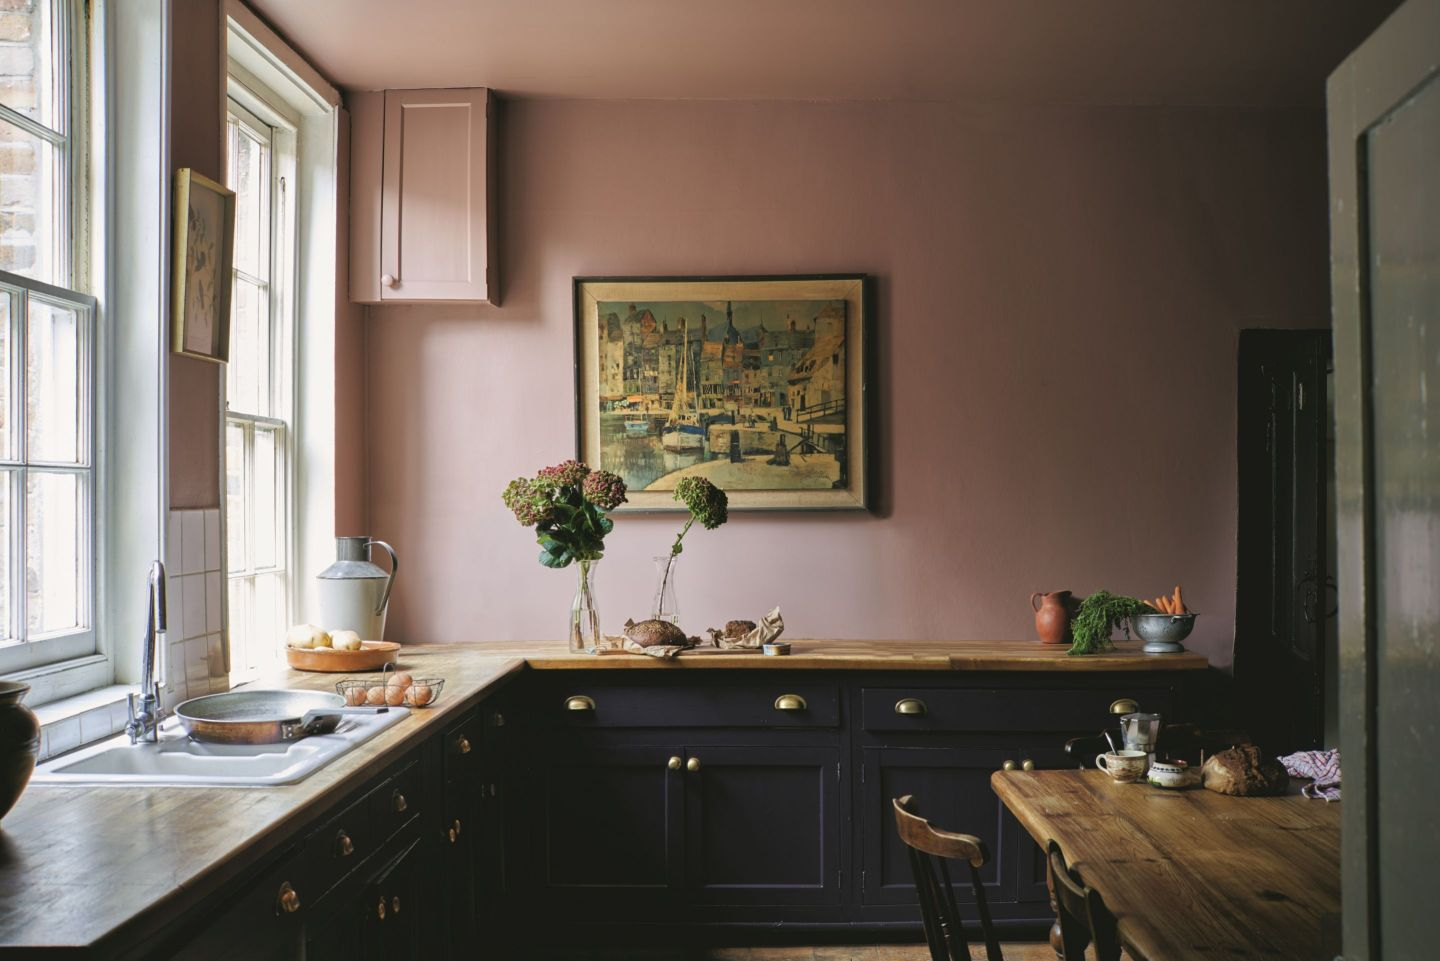 FarrowBall_3251523_FarrowBallNewColours2018.jpg-1440x961 Paint Inspiration: 20 Colorful Rooms We Love